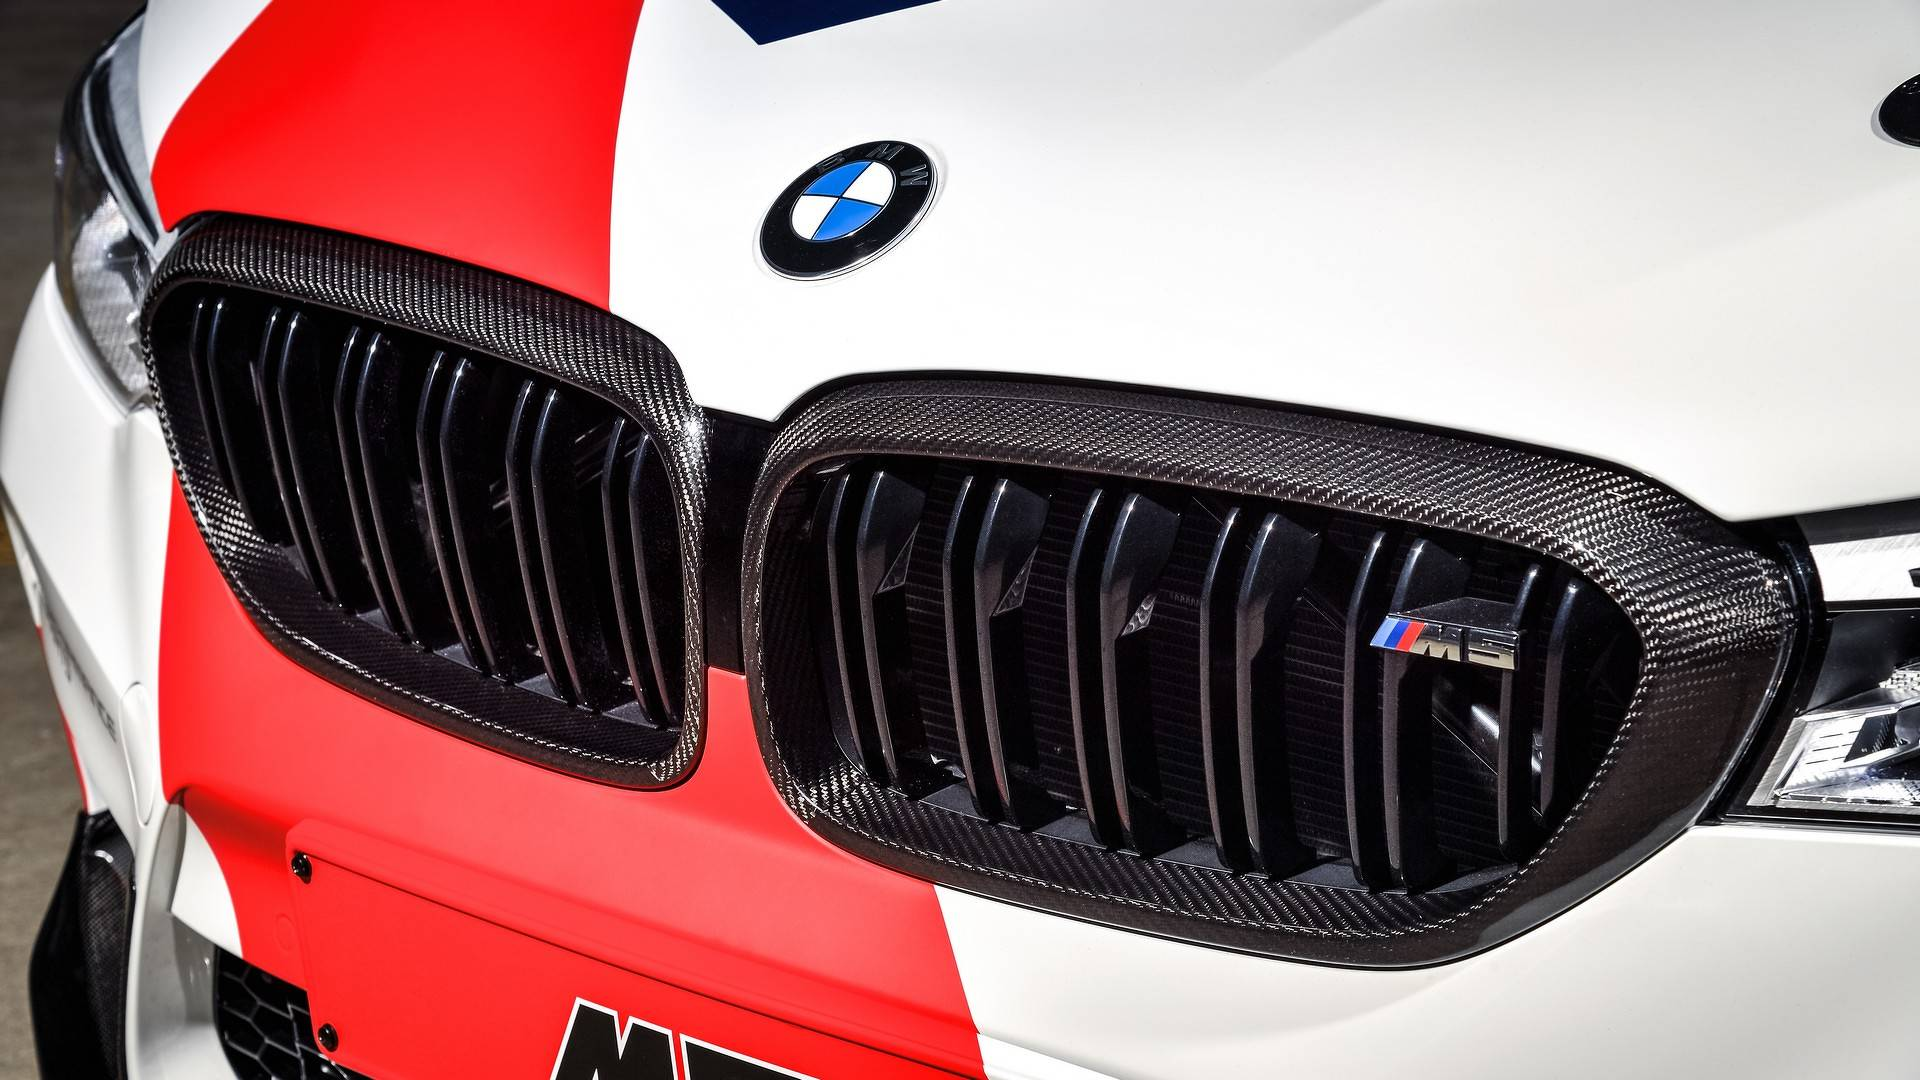 bmw-m5-motogp-safety-car (28)